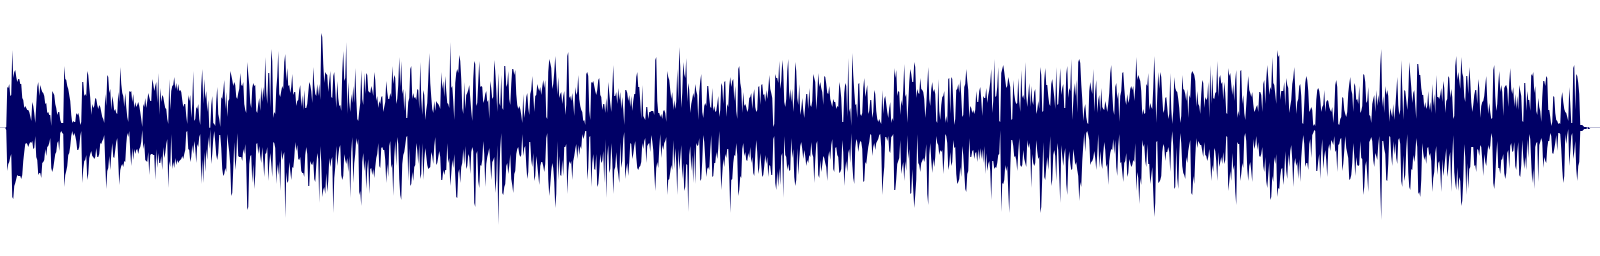 waveform of track #154542